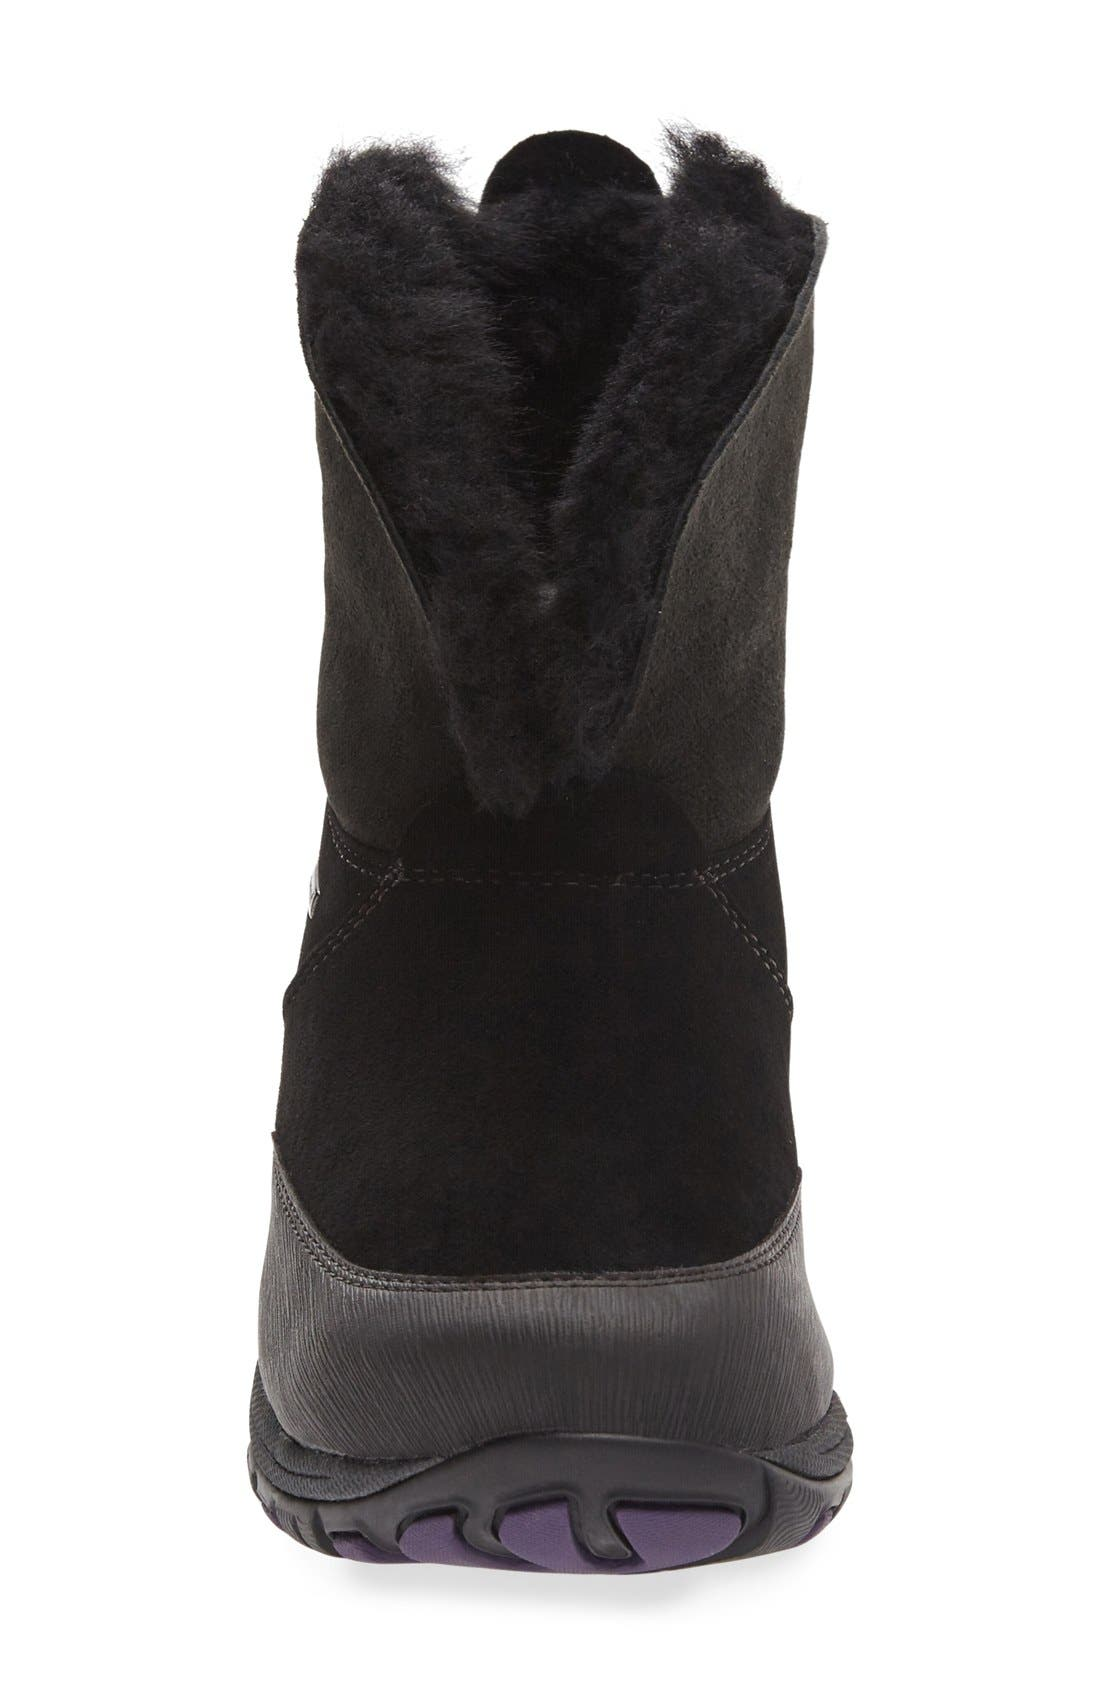 Priscilla Genuine Shearling Waterproof Bootie,                             Alternate thumbnail 8, color,                             001